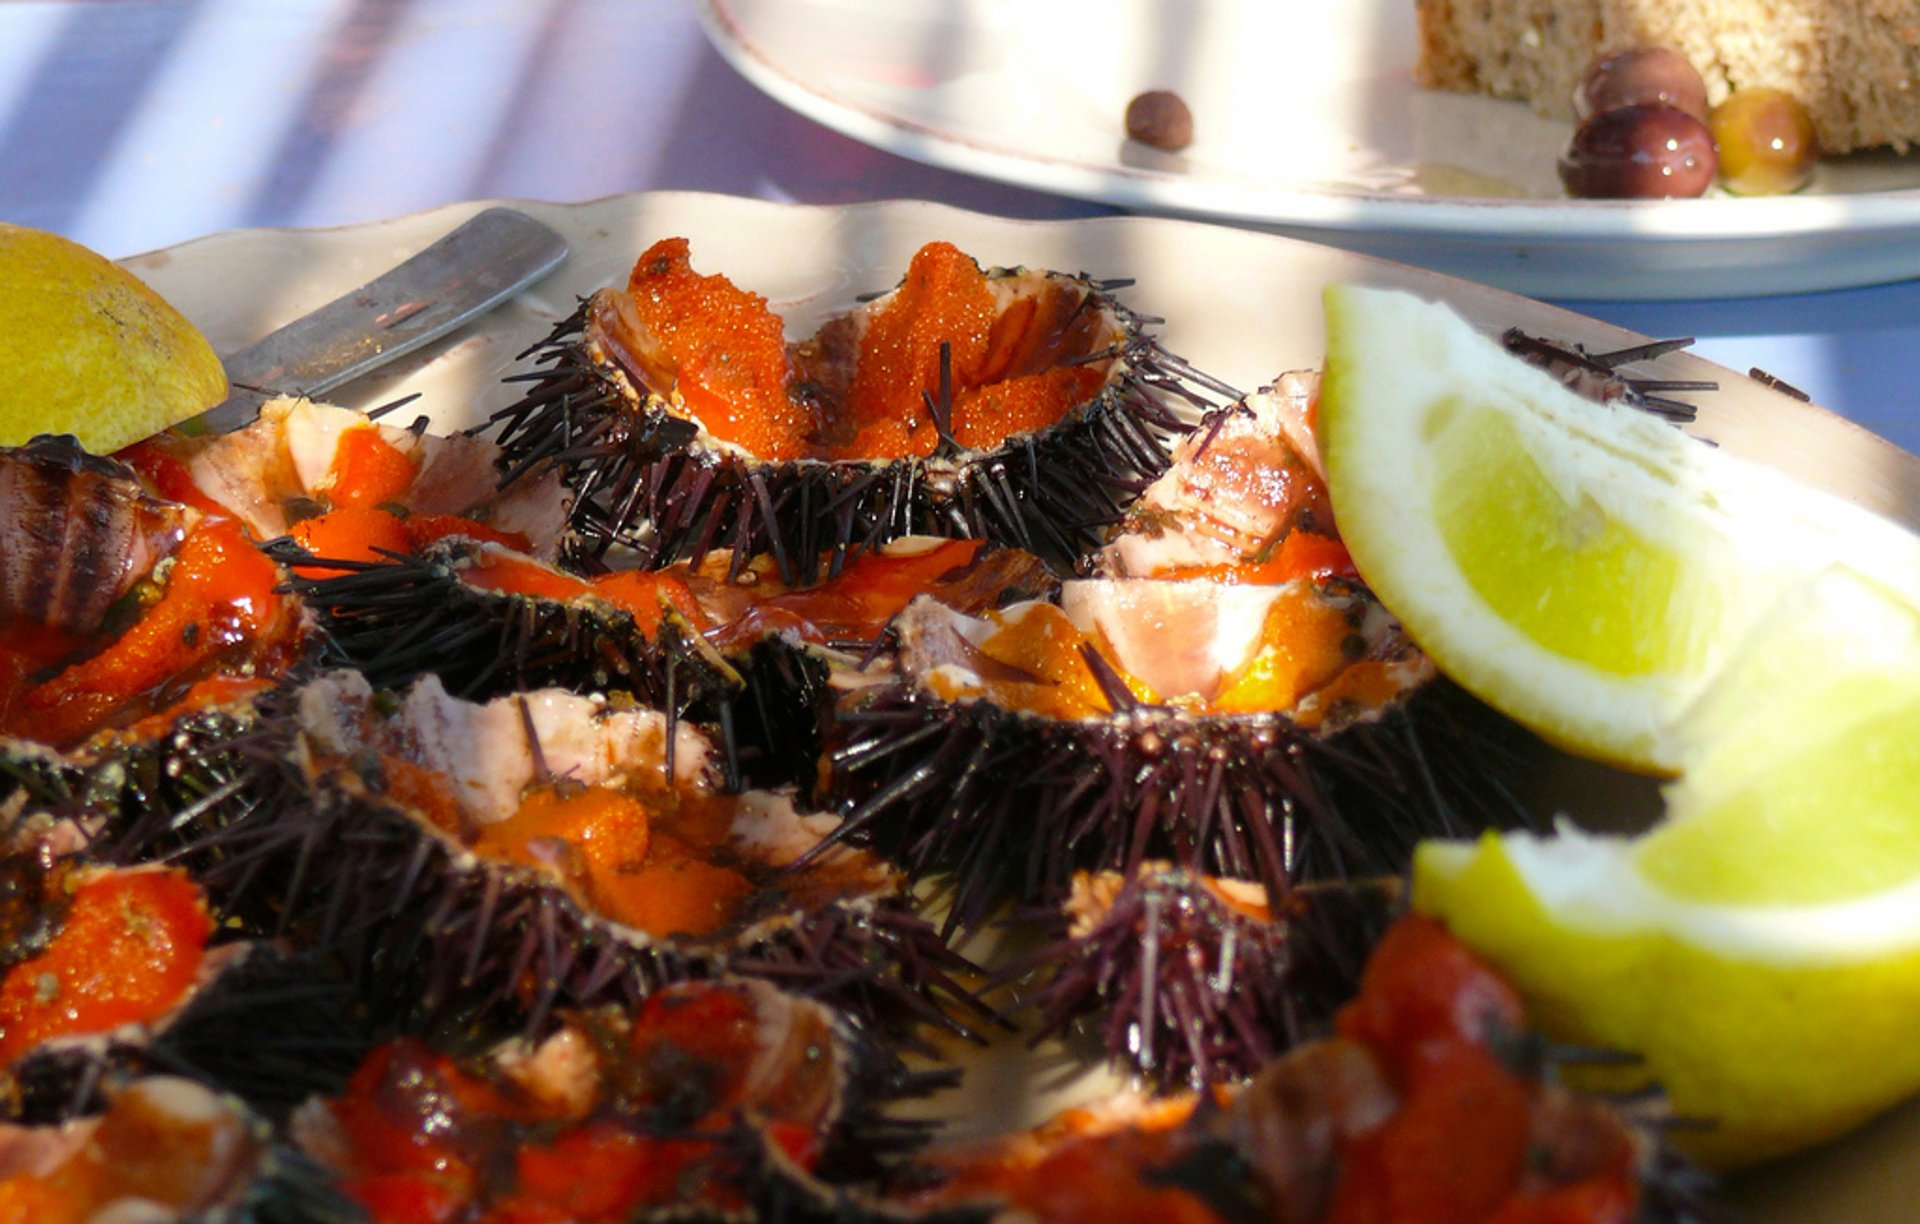 Sea Urchins in Portugal 2019 - Best Time